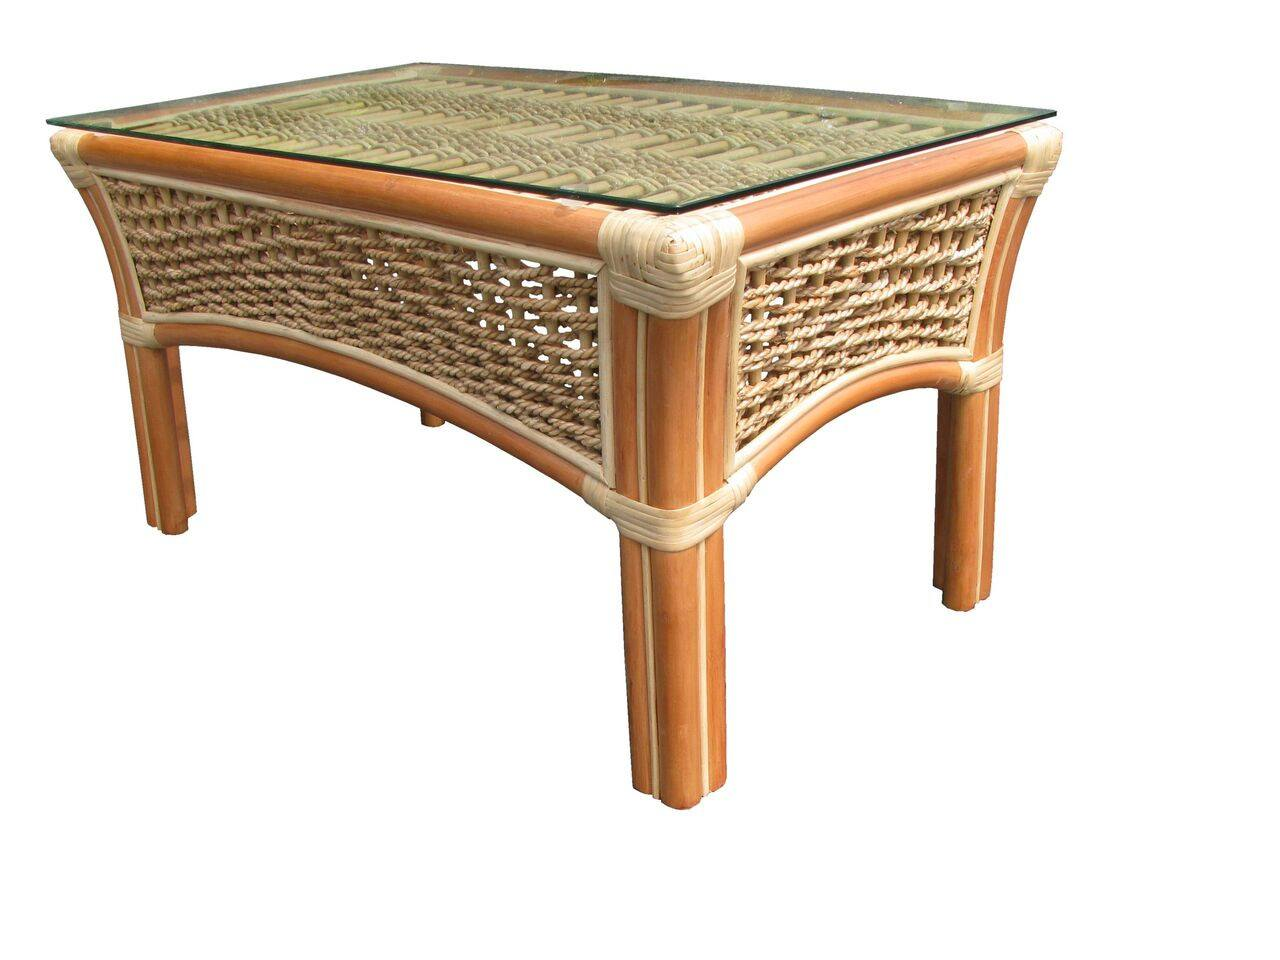 Spice Islands Islander Coffee Table Natural - Rattan Imports